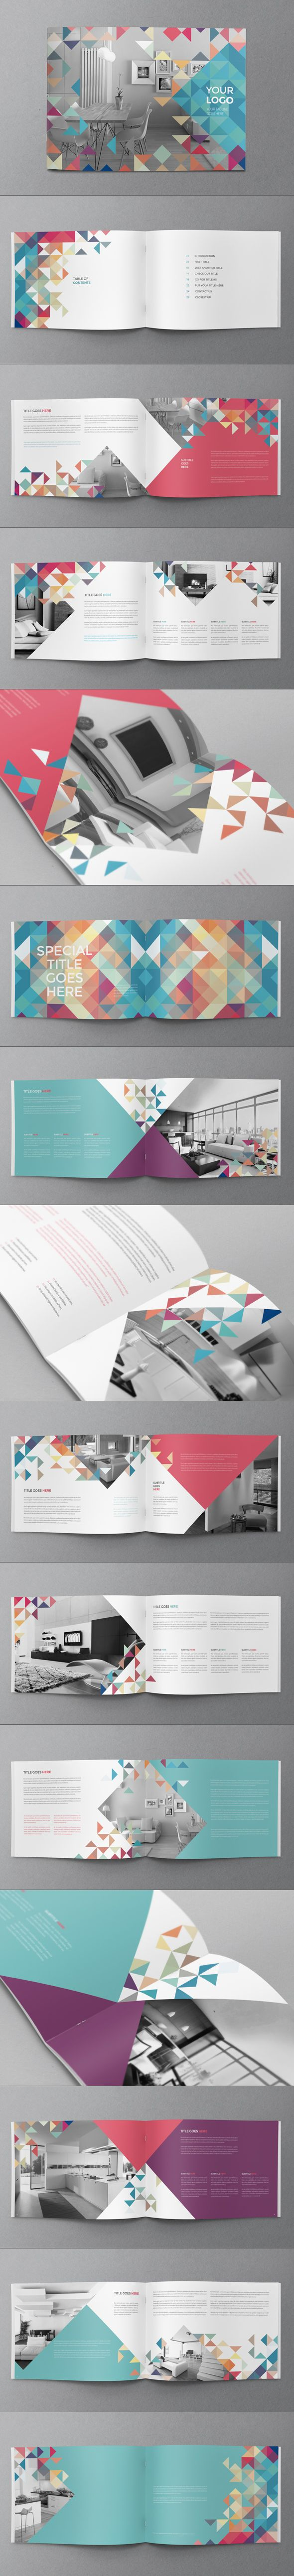 This layout is bright and colourful, I also like the use of geometric shapes as it keeps the spread interesting.